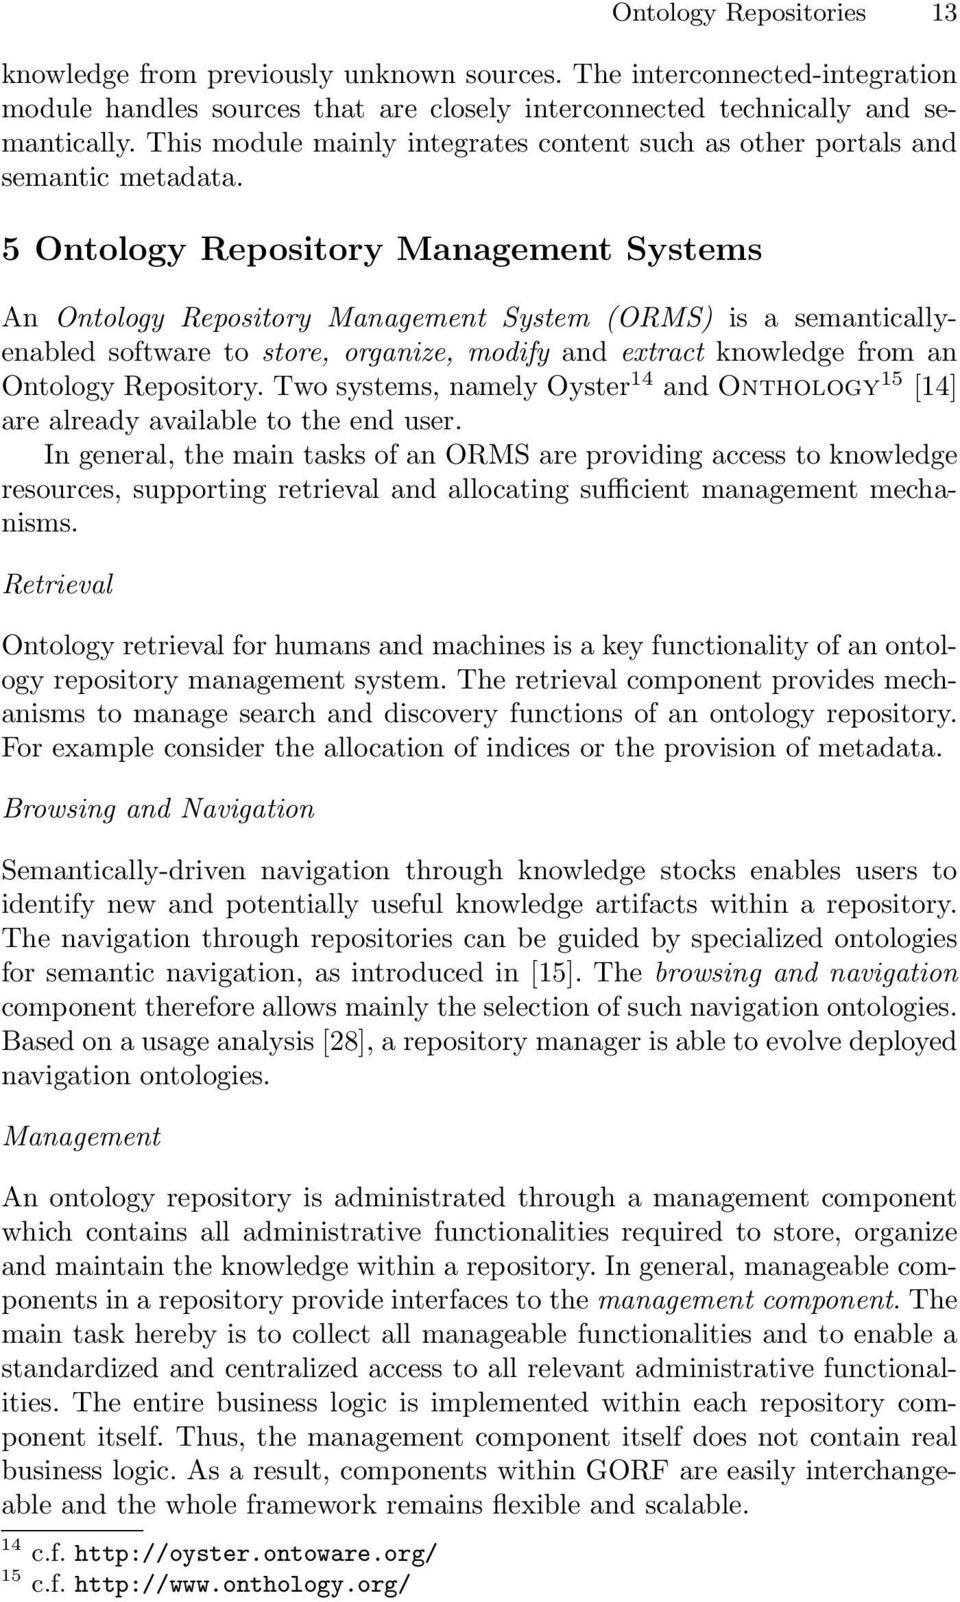 5 Ontology Repository Management Systems An Ontology Repository Management System (ORMS) is a semanticallyenabled software to store, organize, modify and extract knowledge from an Ontology Repository.